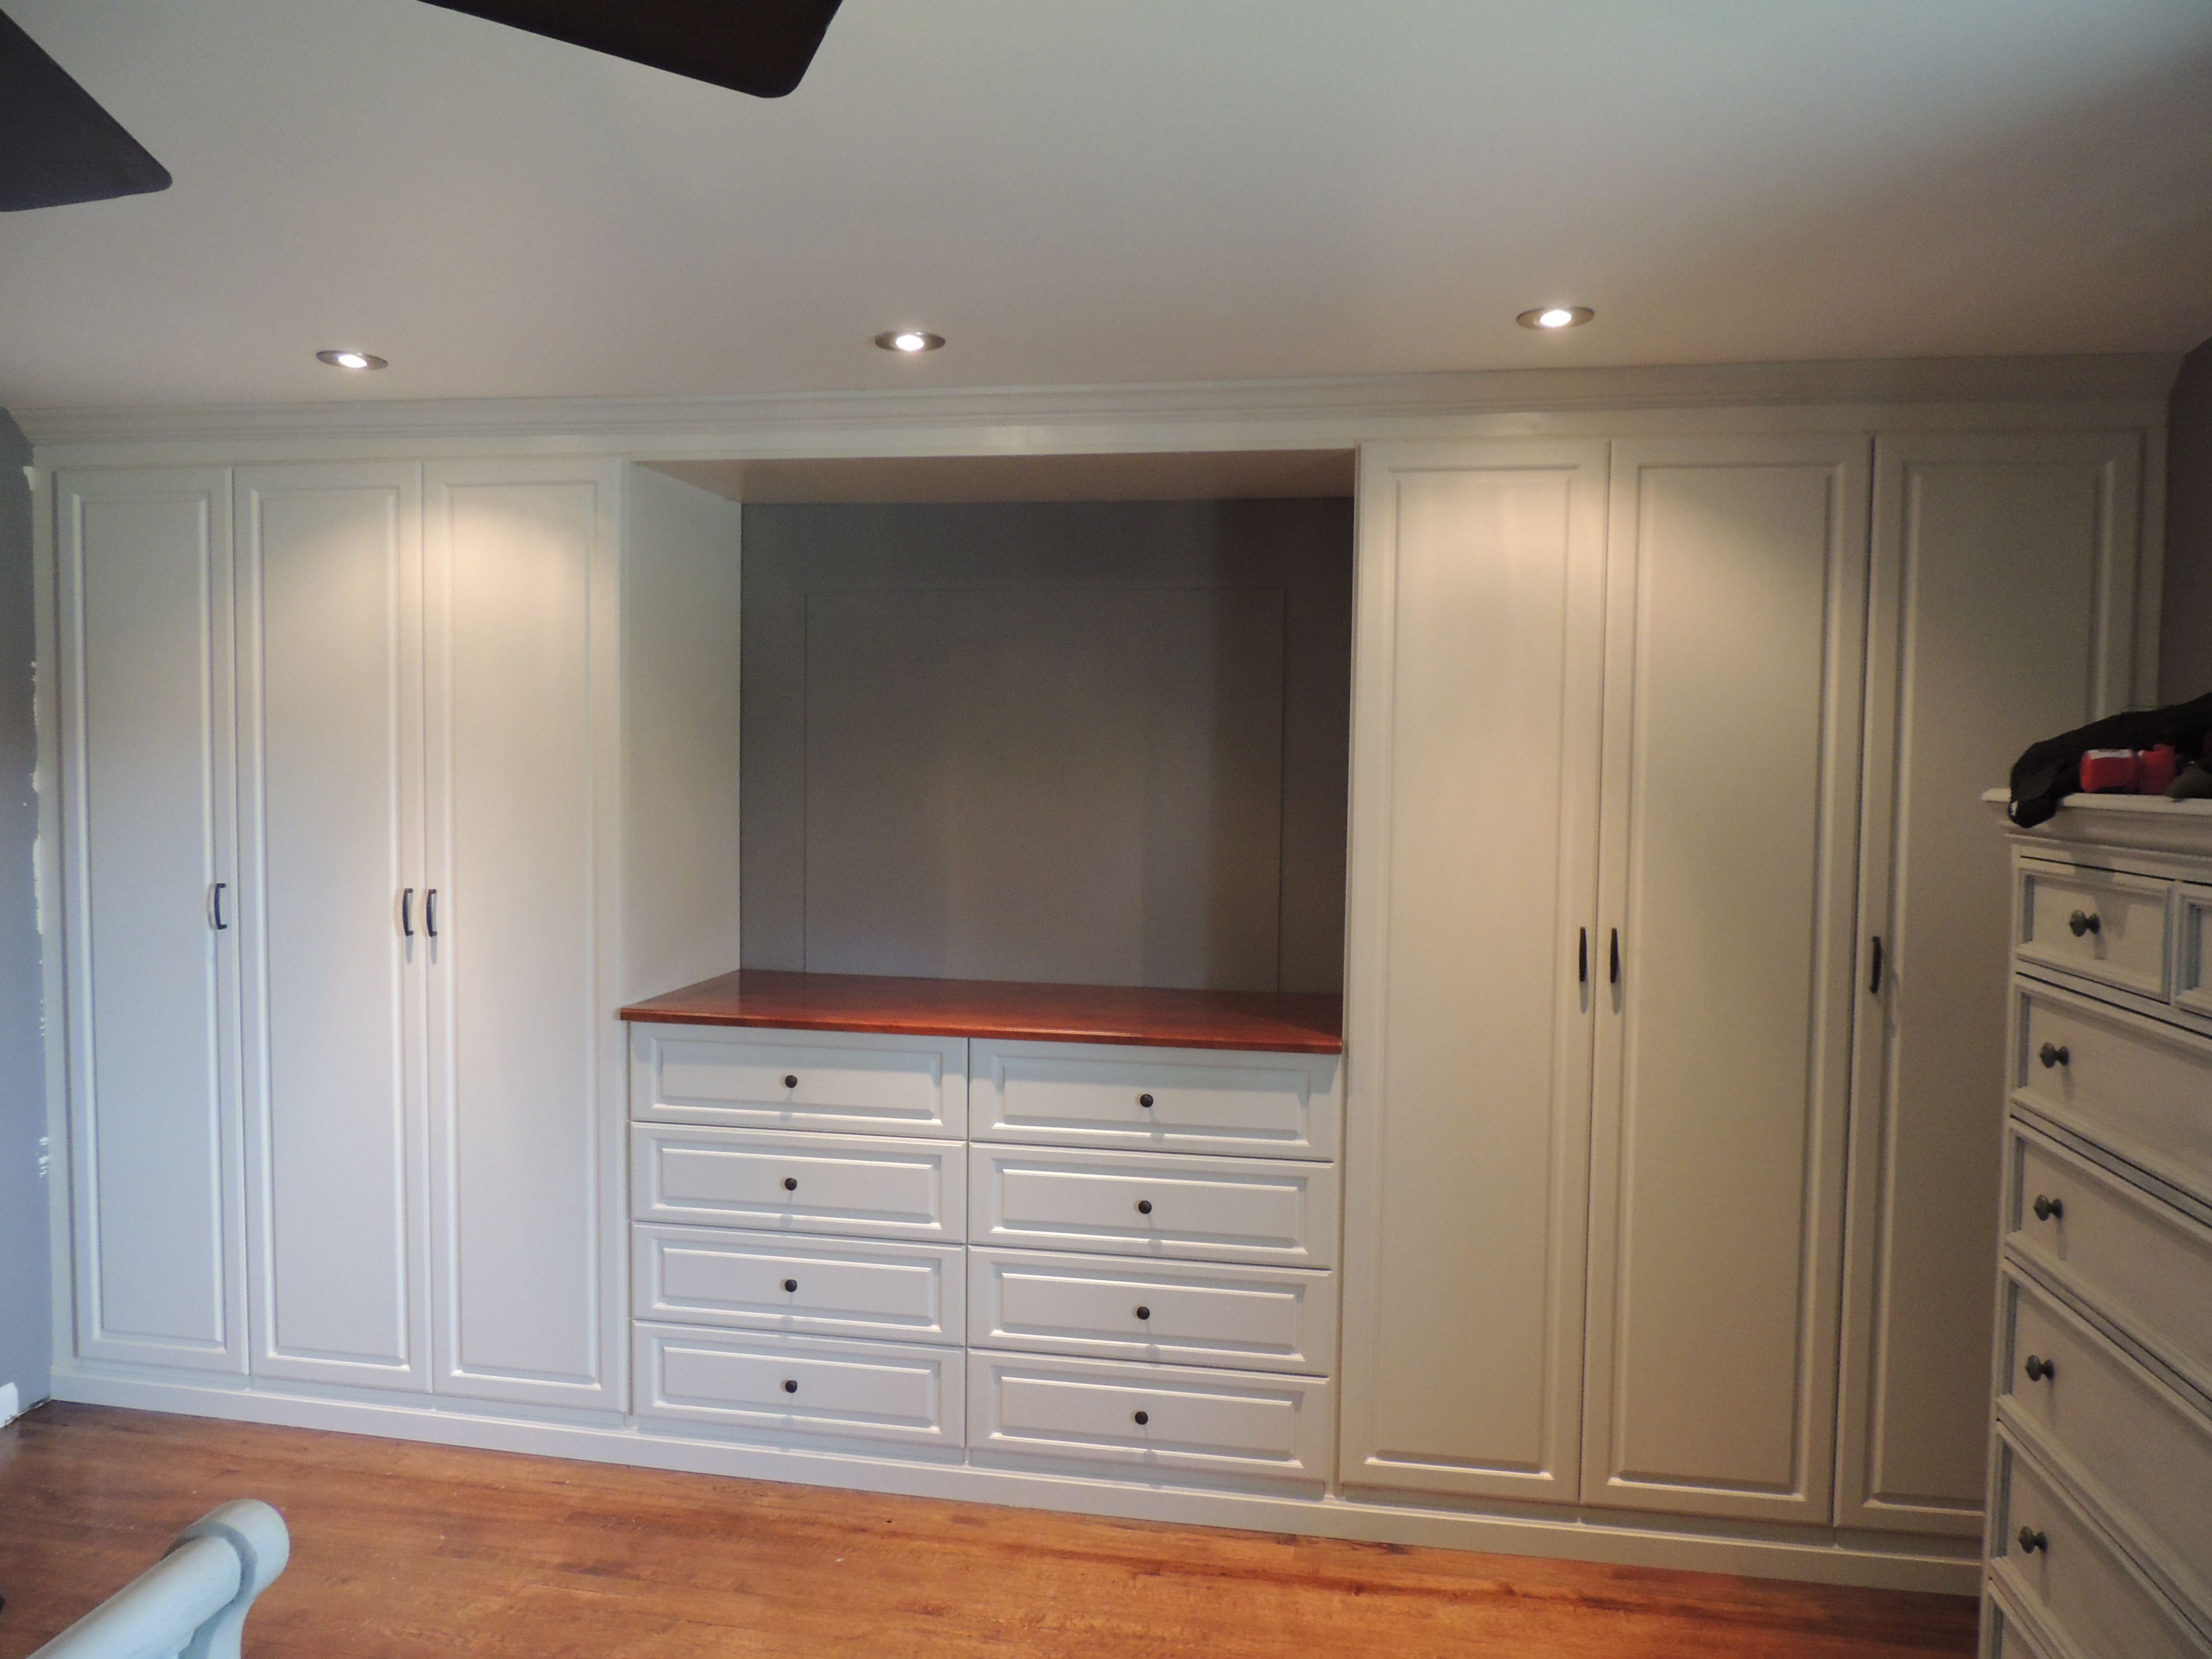 Closet Organizer Services For Merion Station Pa Build A Closet Bedroom Built Ins Bedroom Wall Units